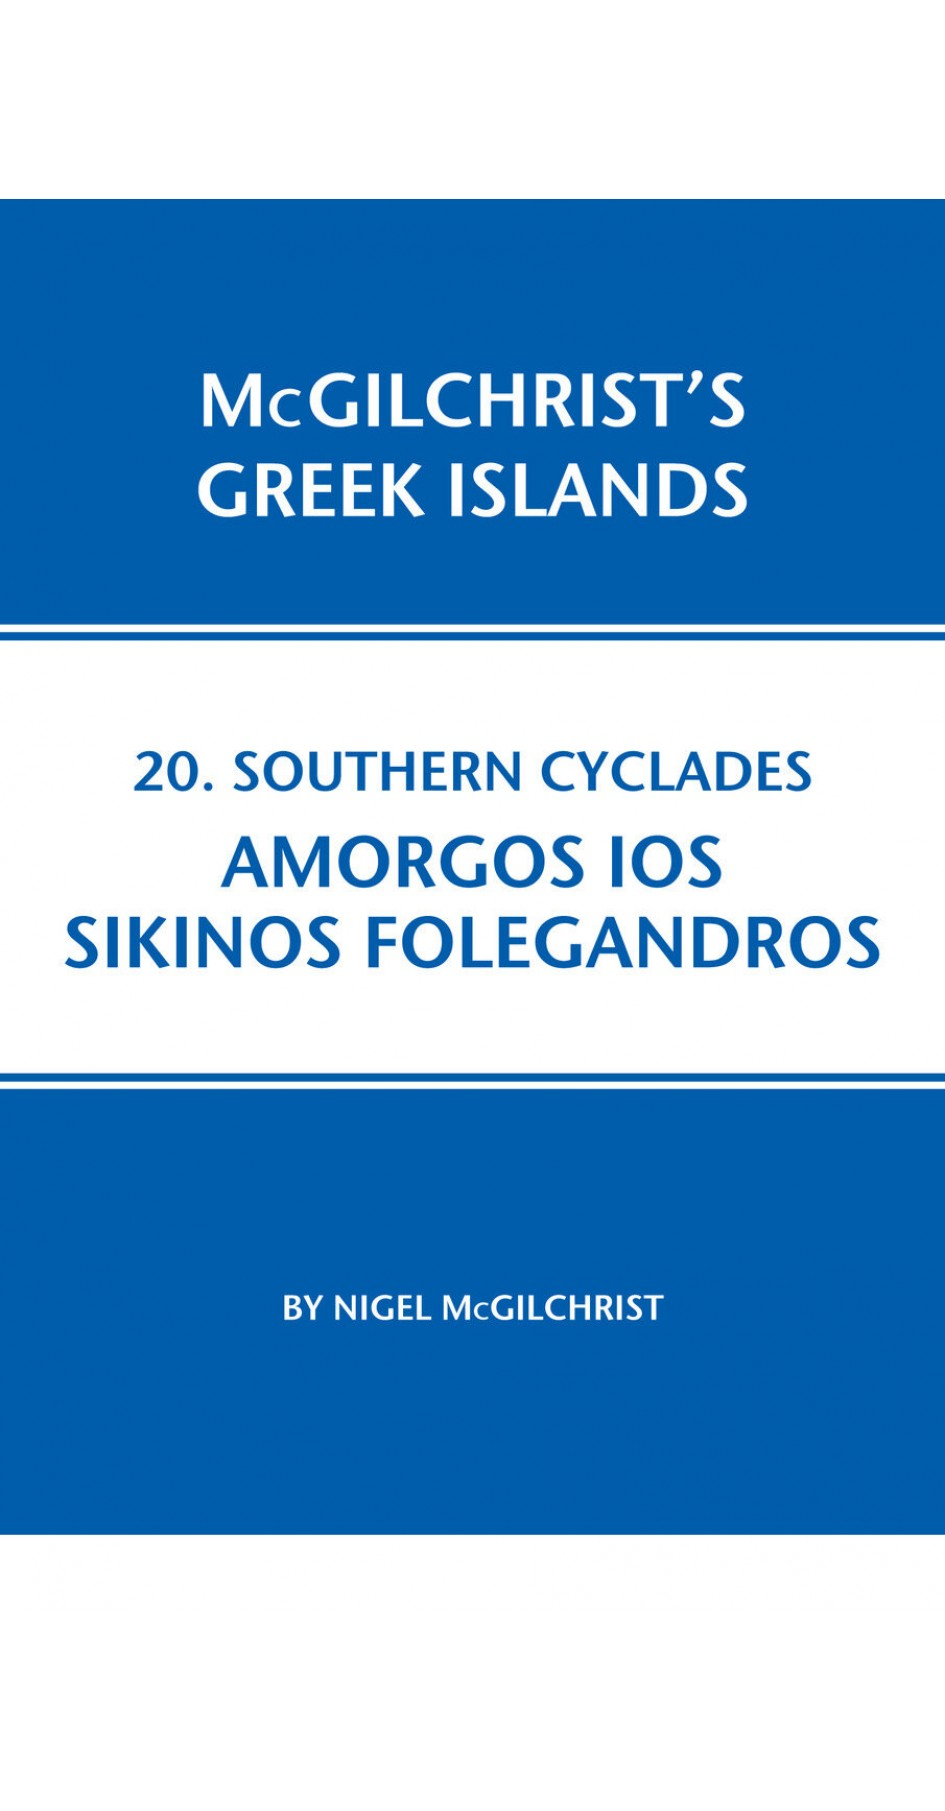 20. Southern Cyclades: Amorgos, Ios, Sikinos, Folegandros - McGilchrist's Greek Islands